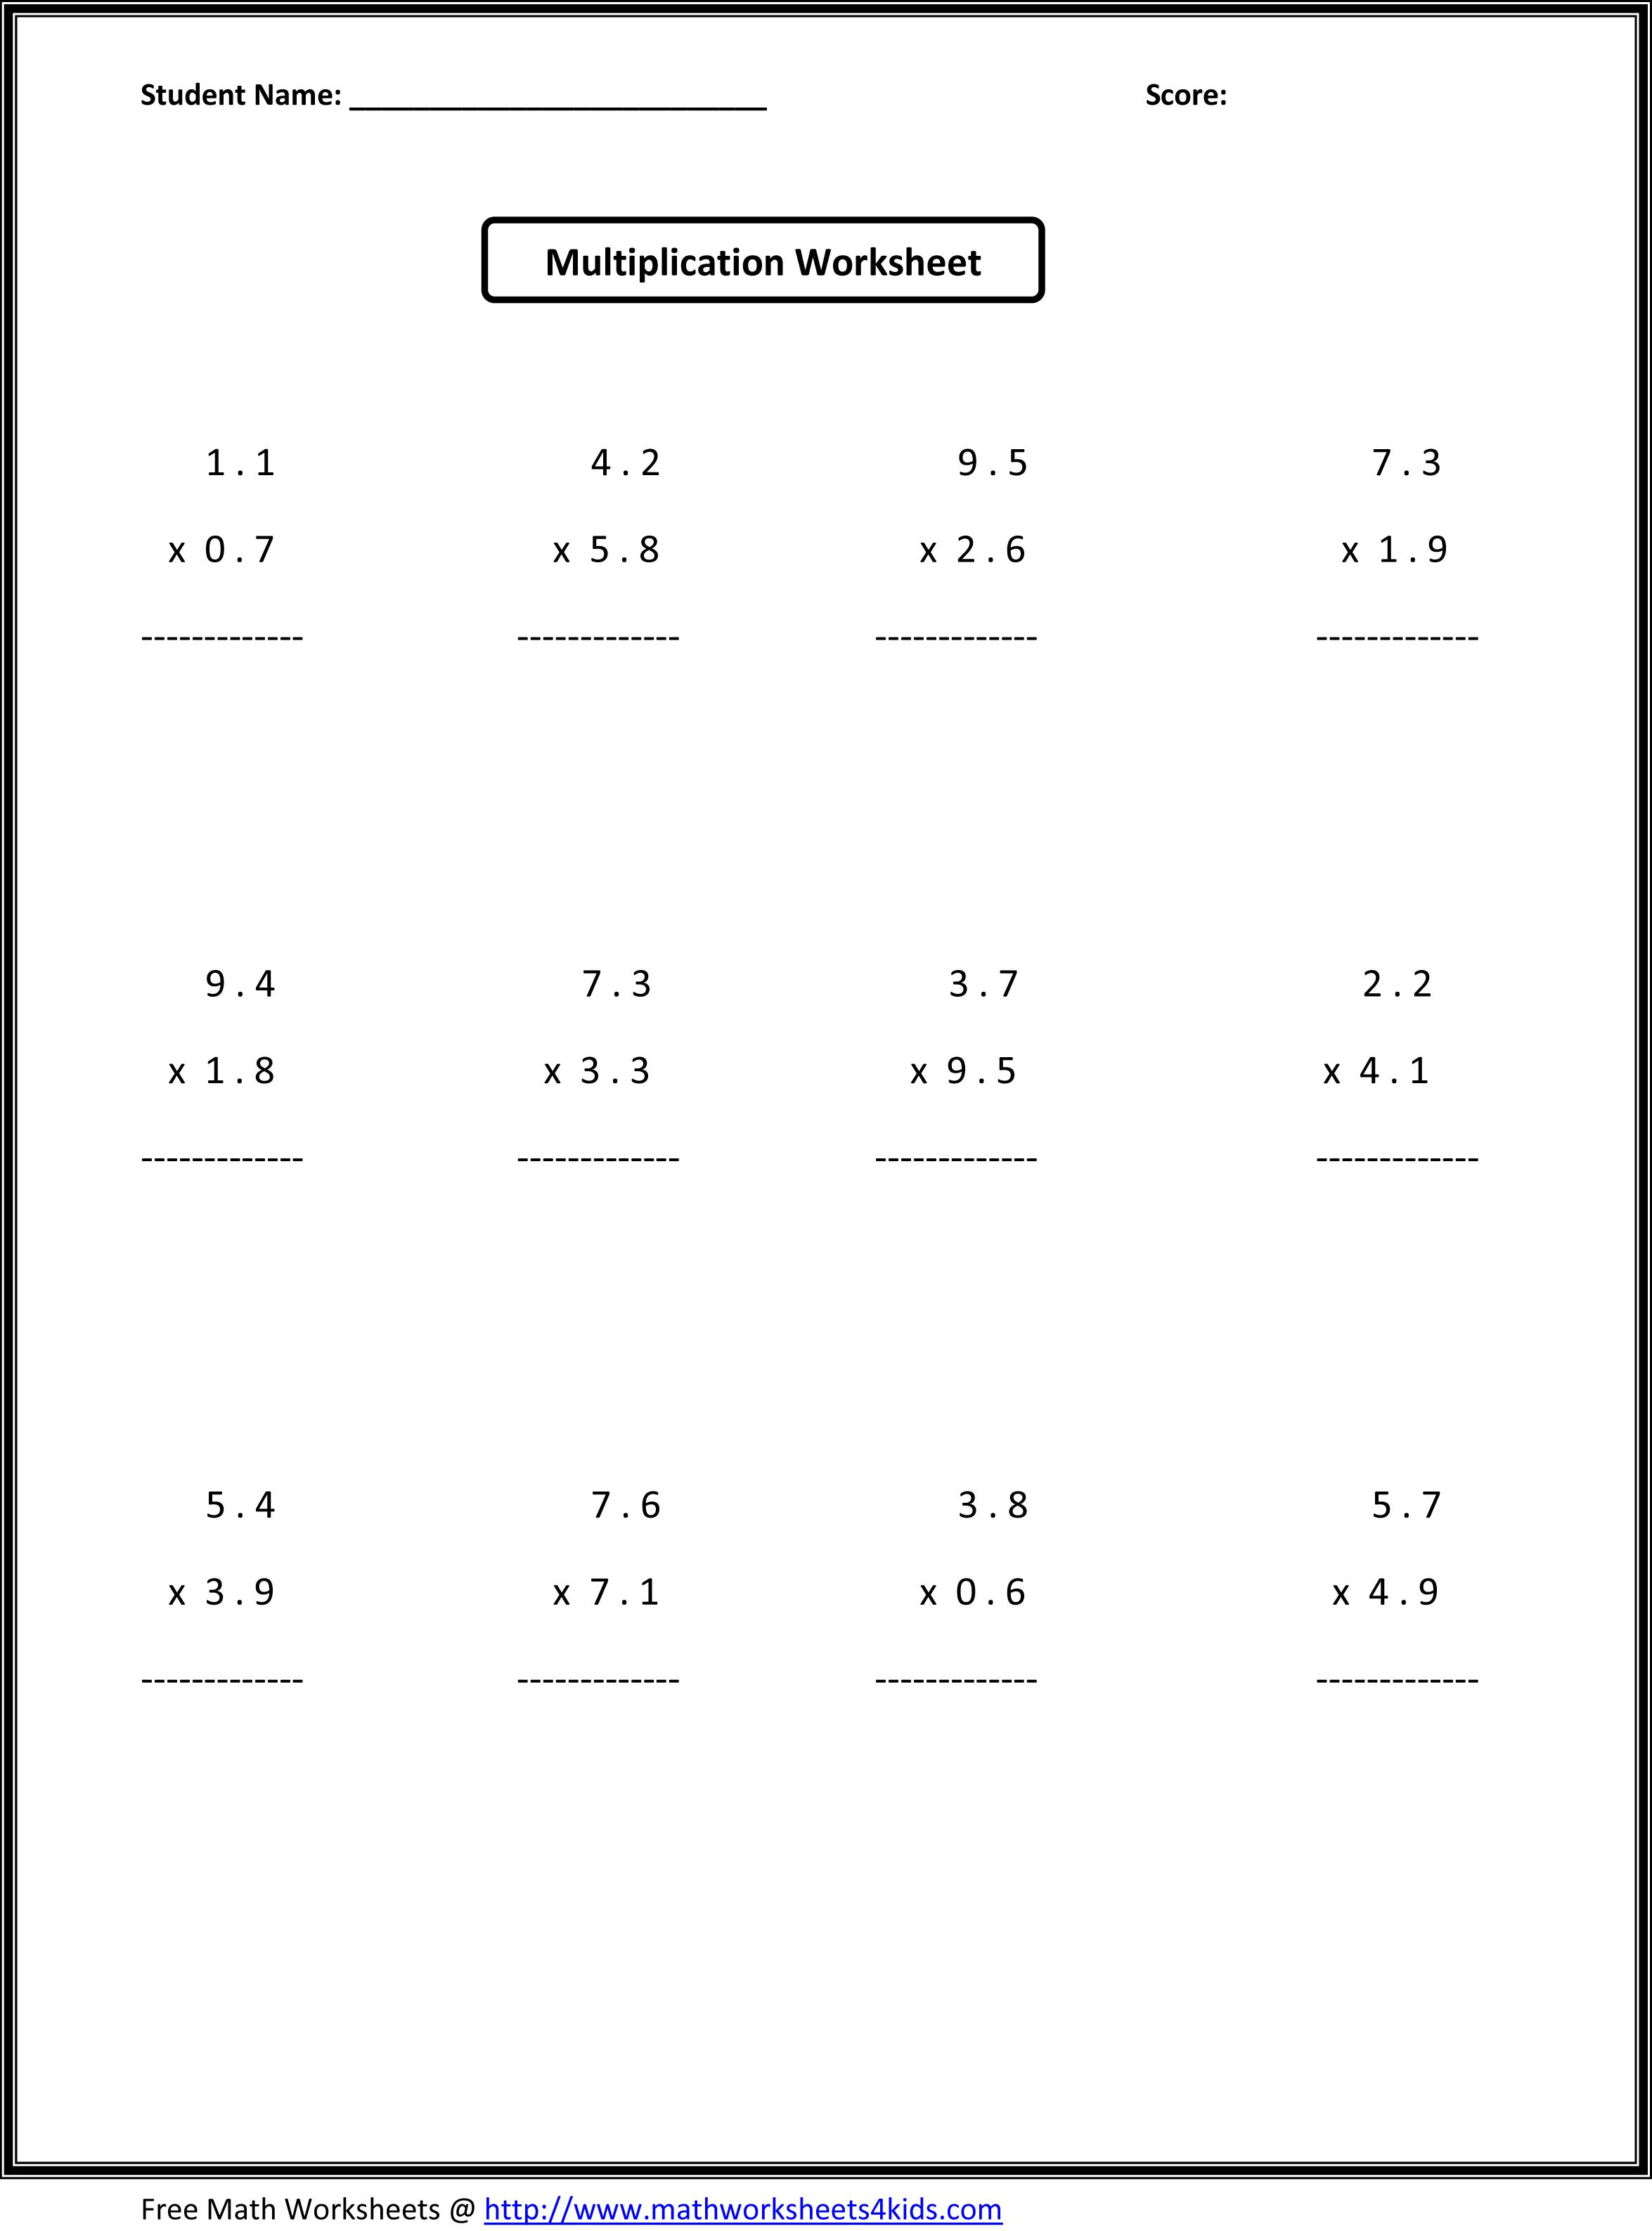 7Th Grade Math Worksheets | Value Worksheets Absolute Value - Free | Free Printable Order Of Operations Worksheets 7Th Grade